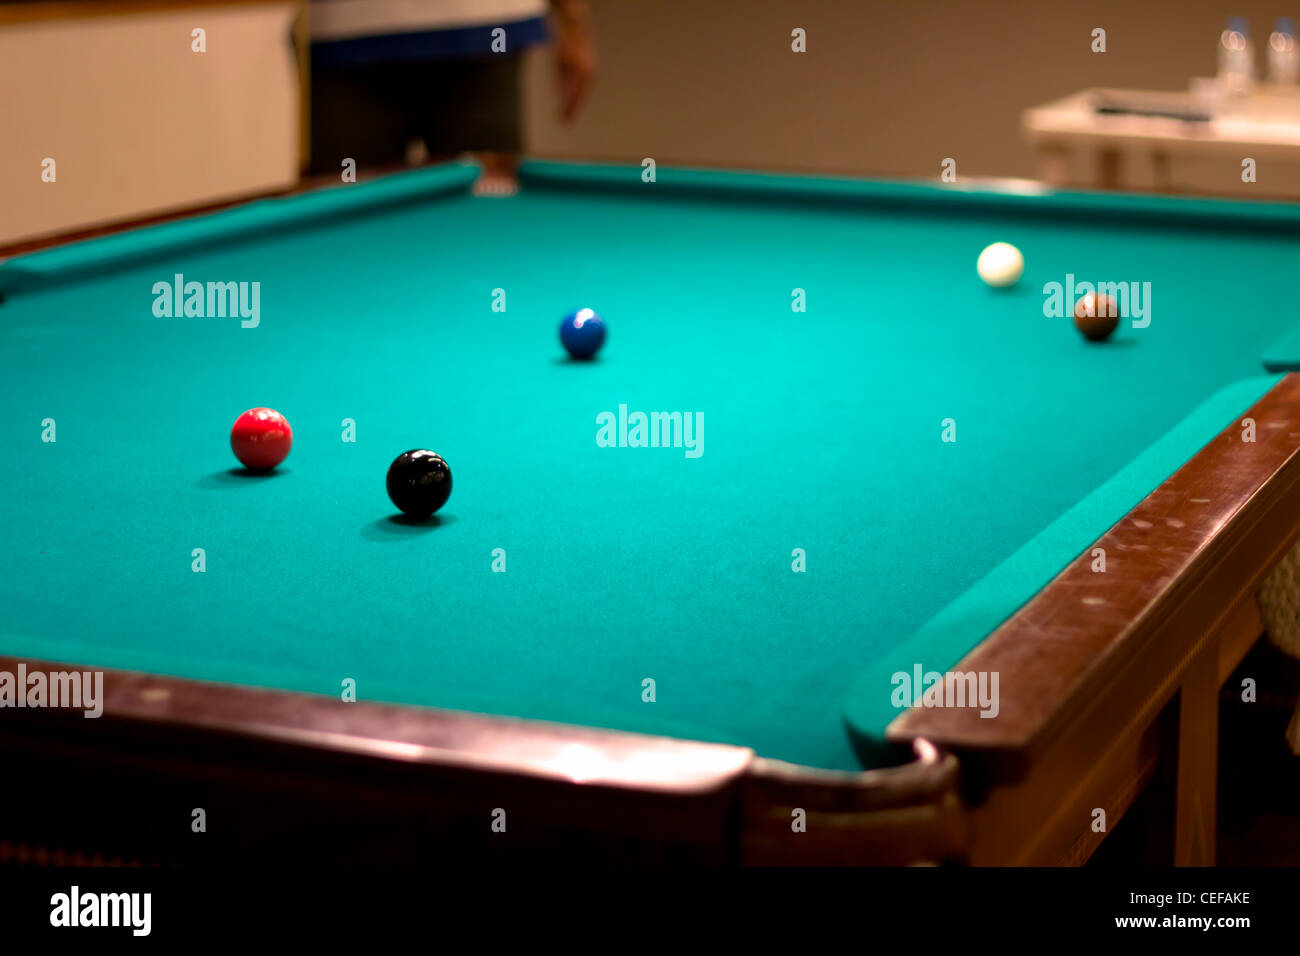 A pool table with several snooker balls - Stock Image